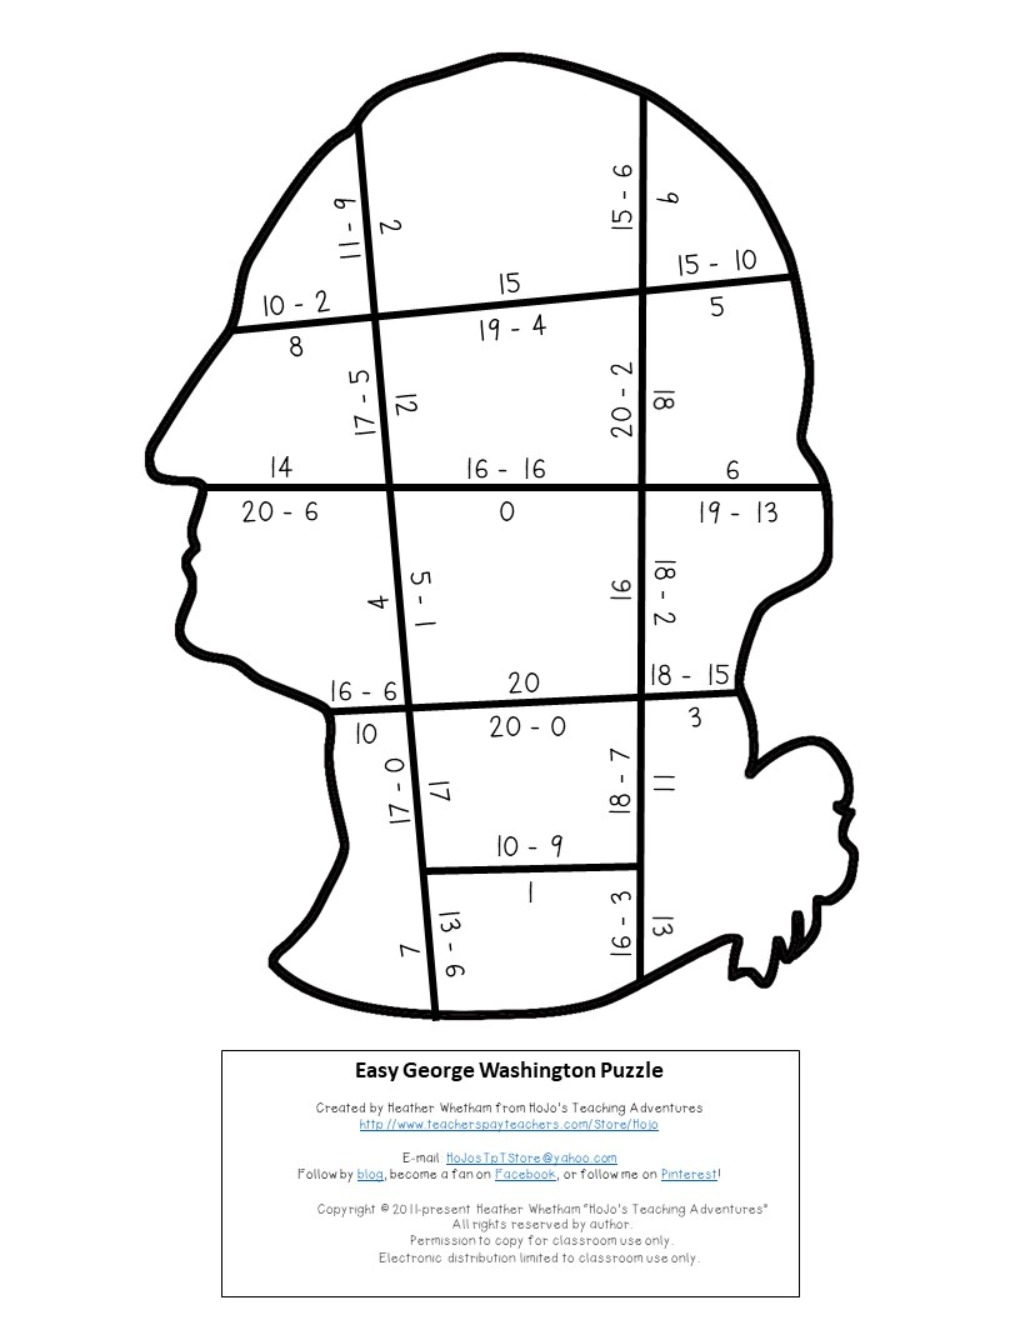 SUBTRACTION President George Washington Puzzles for 1st, 2nd, or 3rd Grade